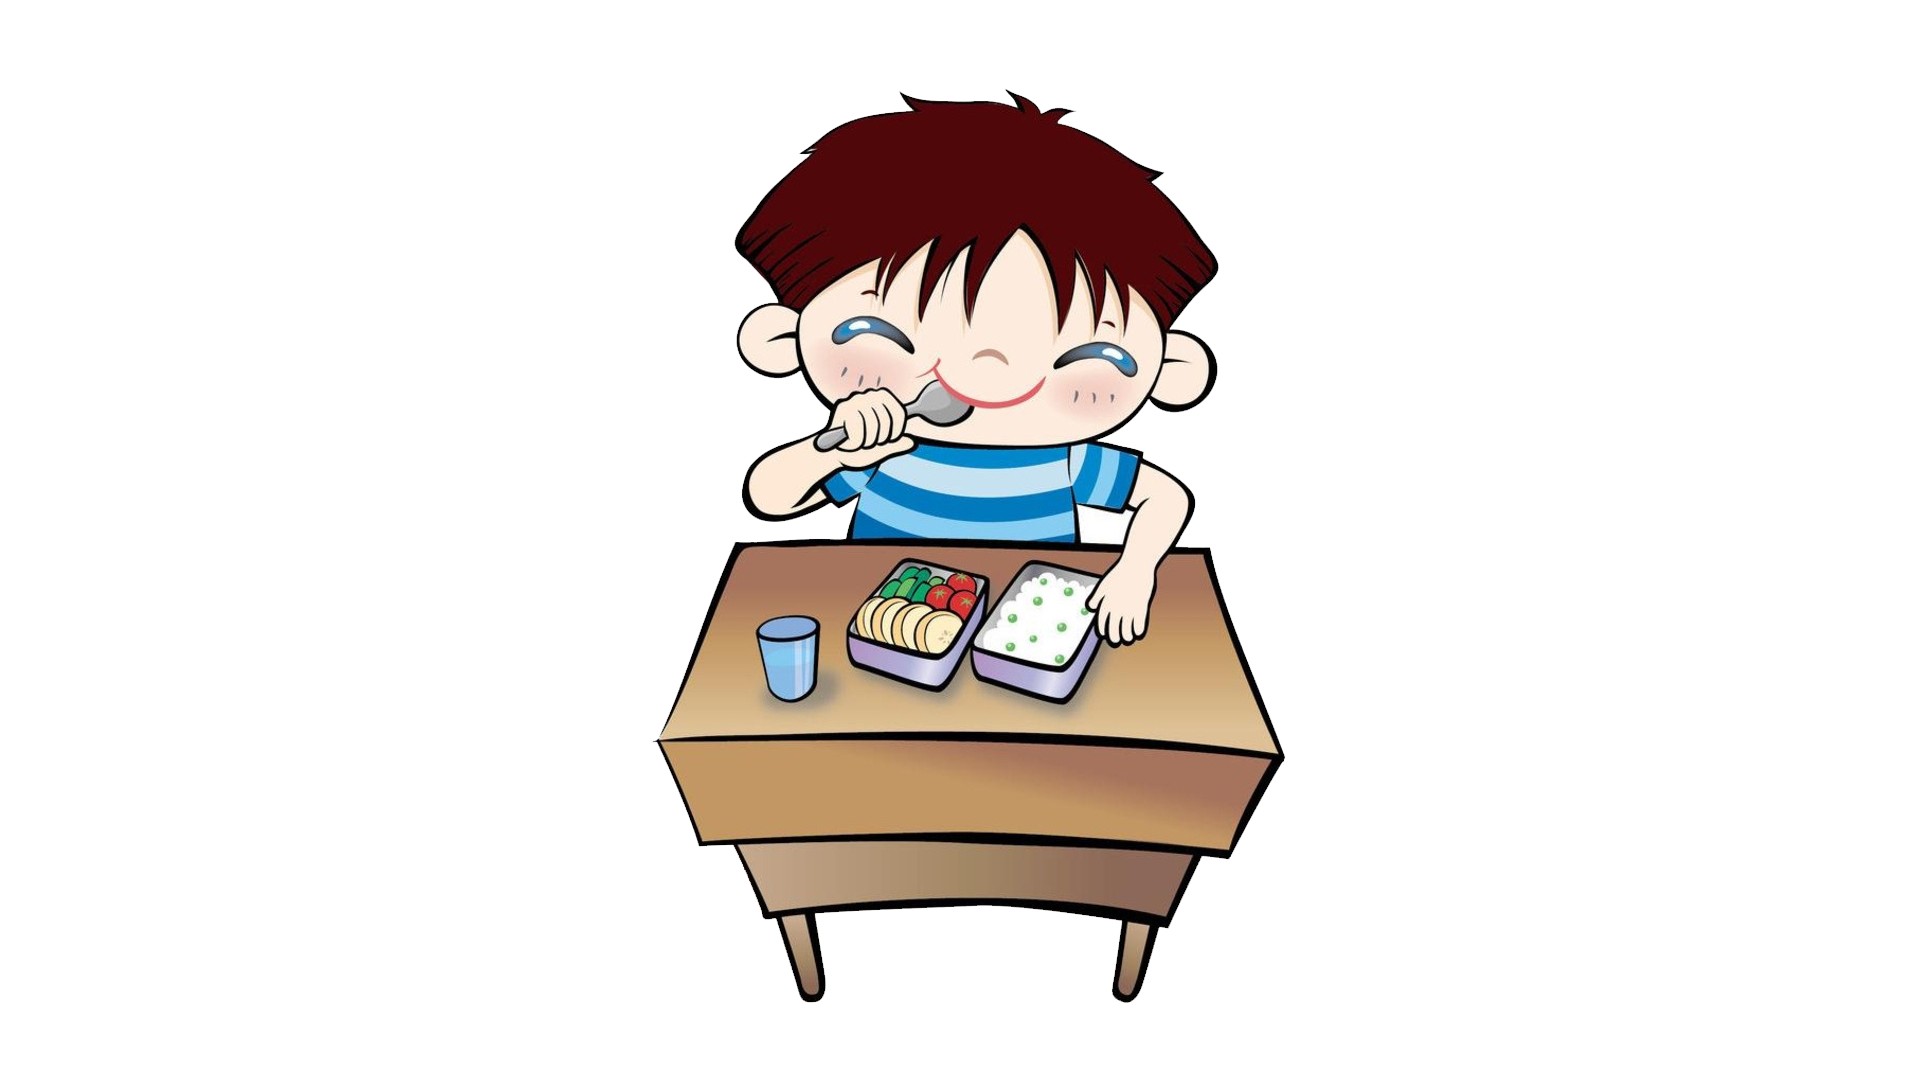 Luncheon clipart student. Eating lunch clip art